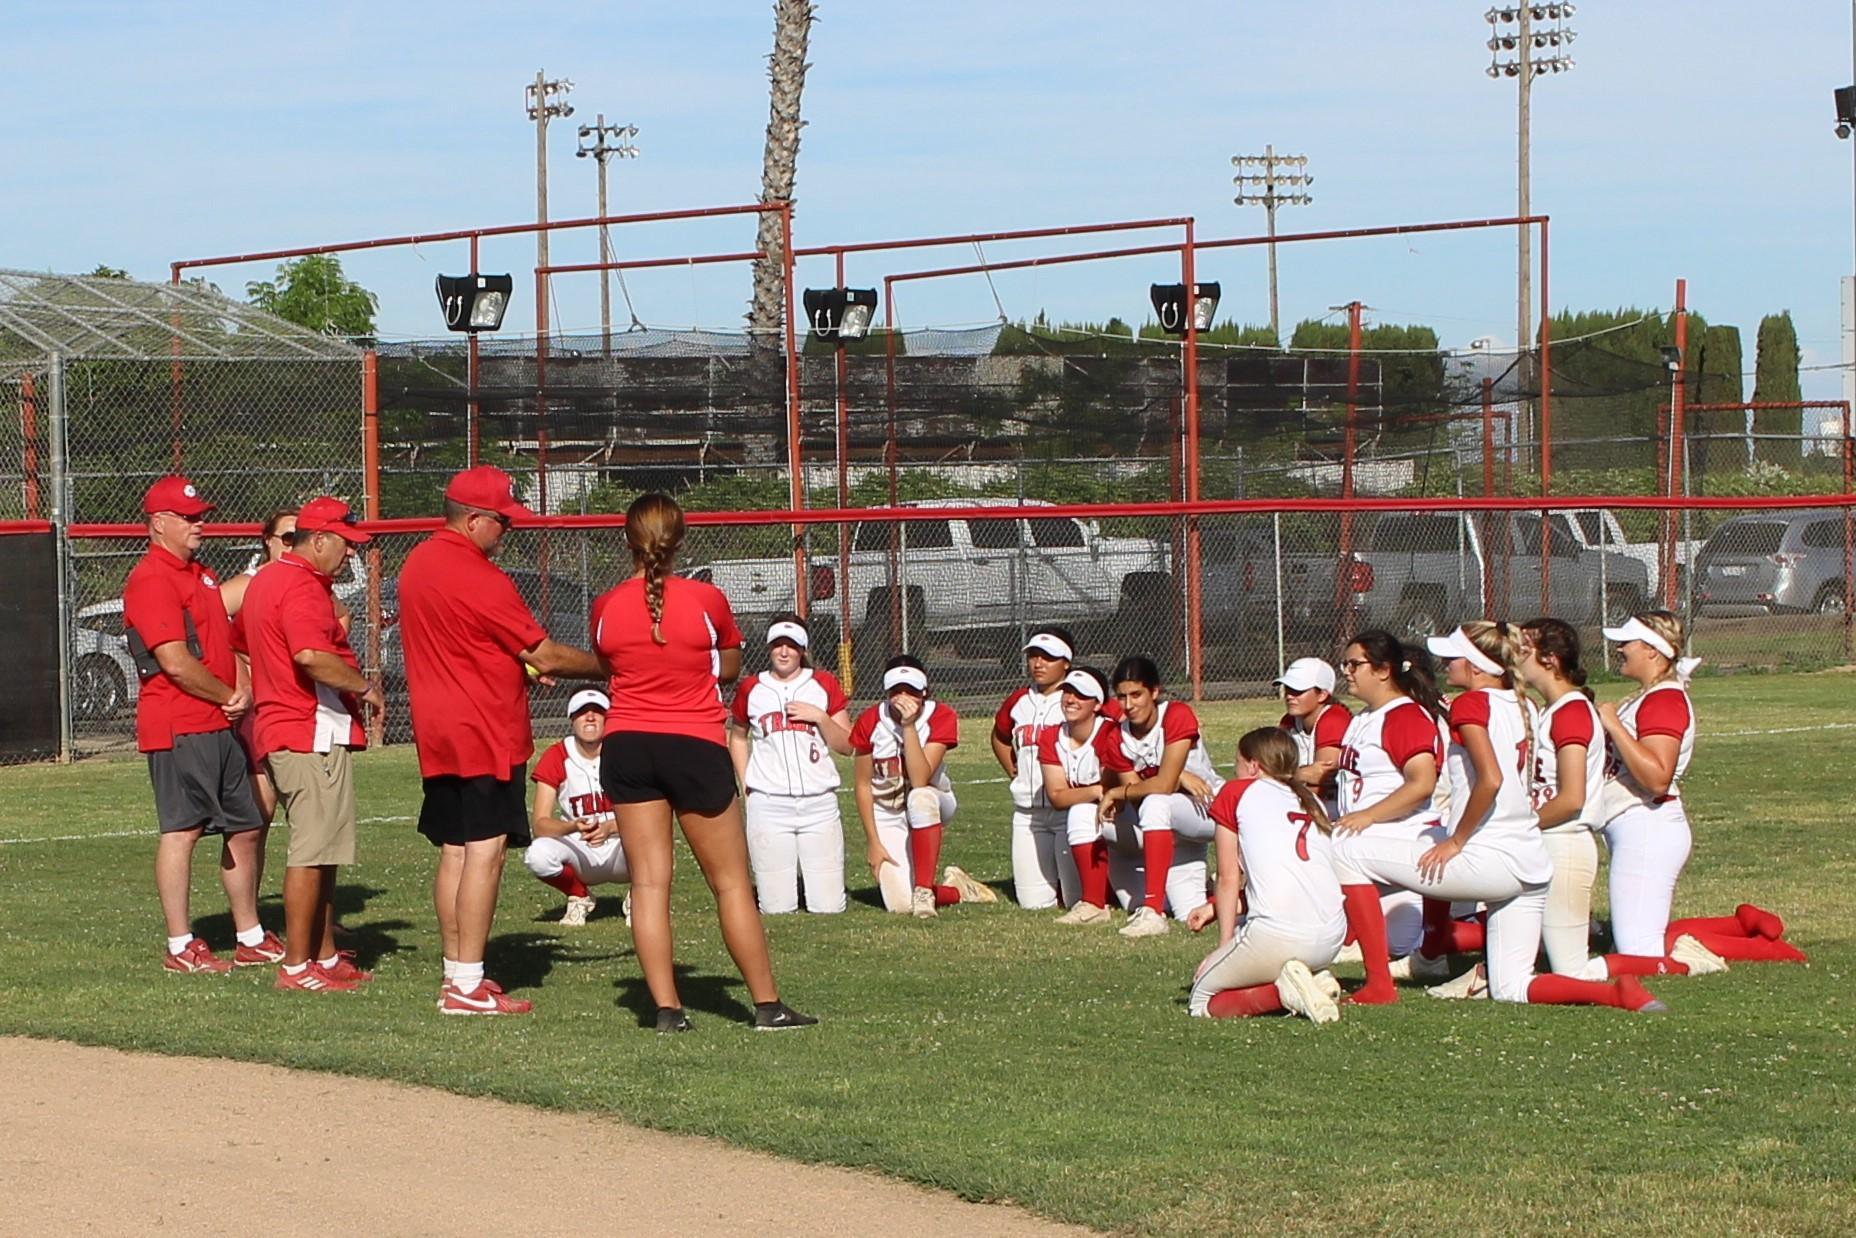 Coaches and players talk after the game